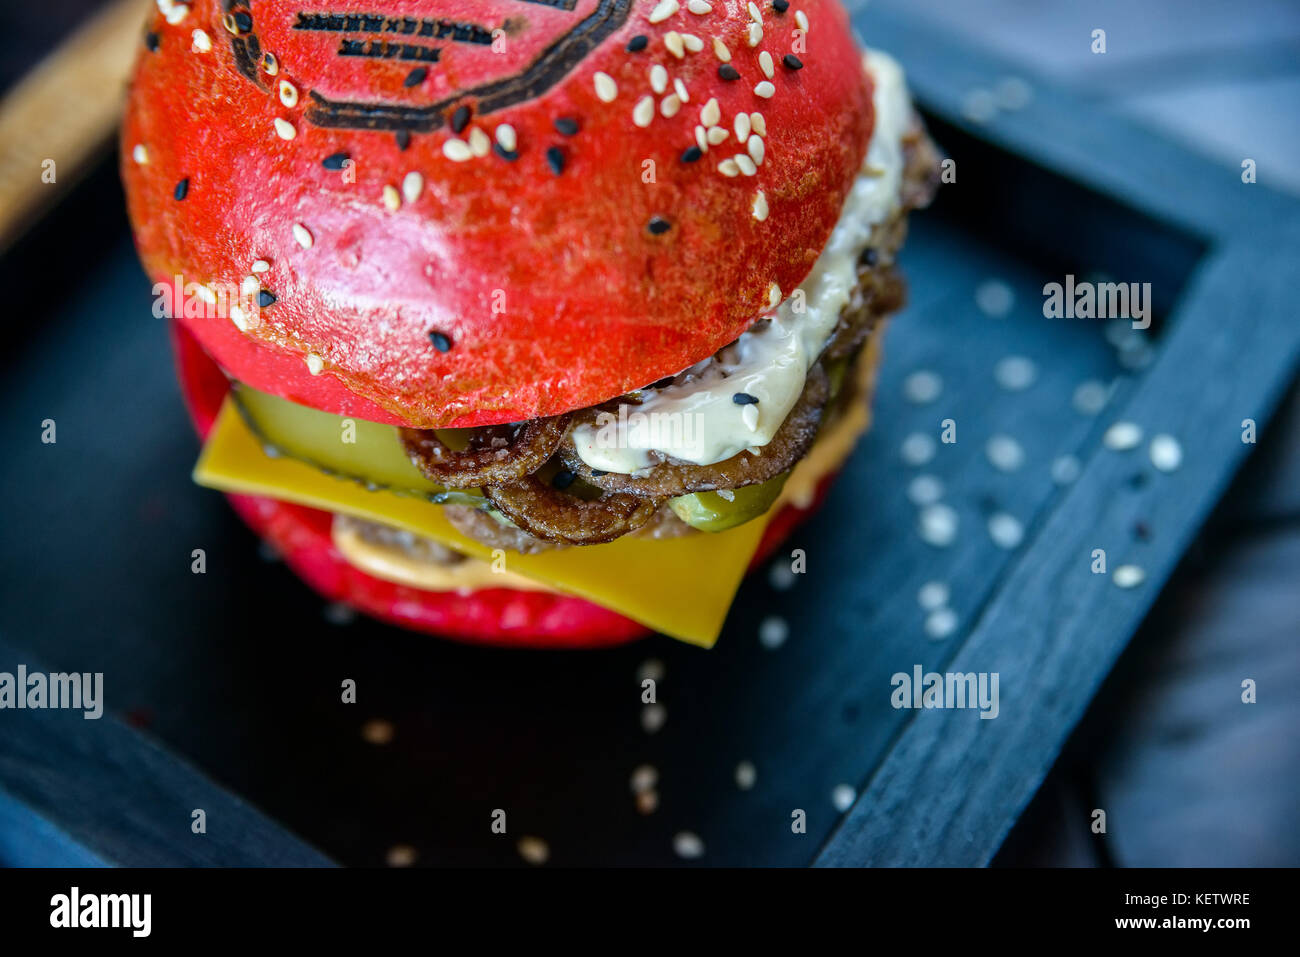 Black burger with prawns on wooden board - Stock Image